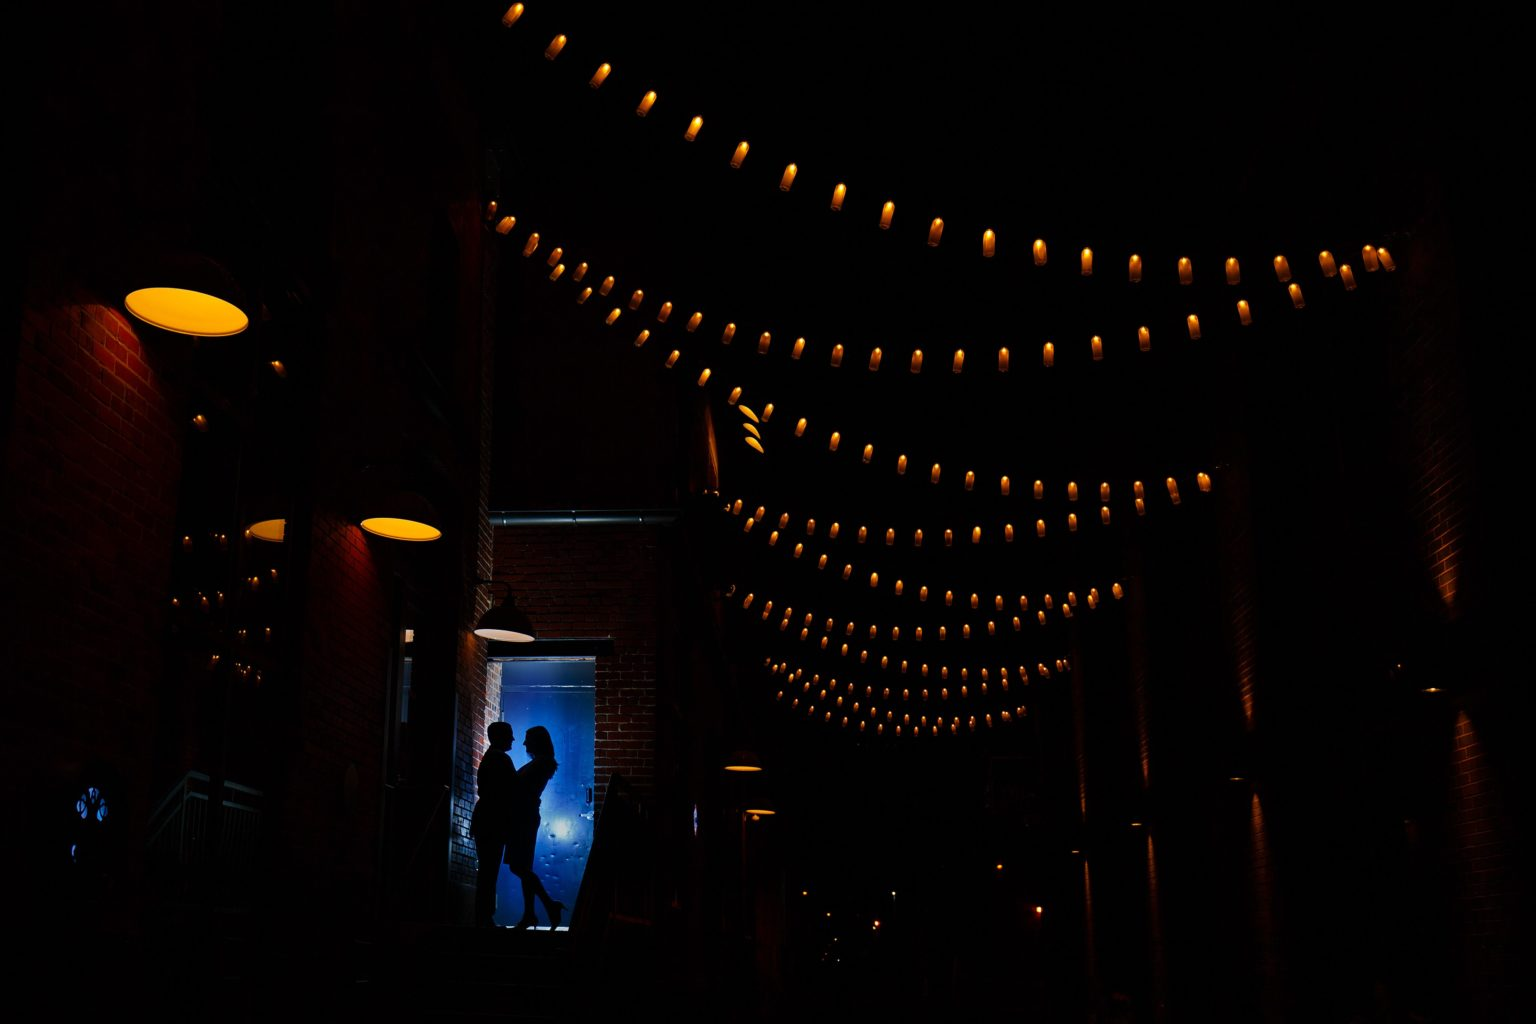 Joel and Katie share a moment together at The Dairy Block at night in downtown Denver during their spring engagement photos